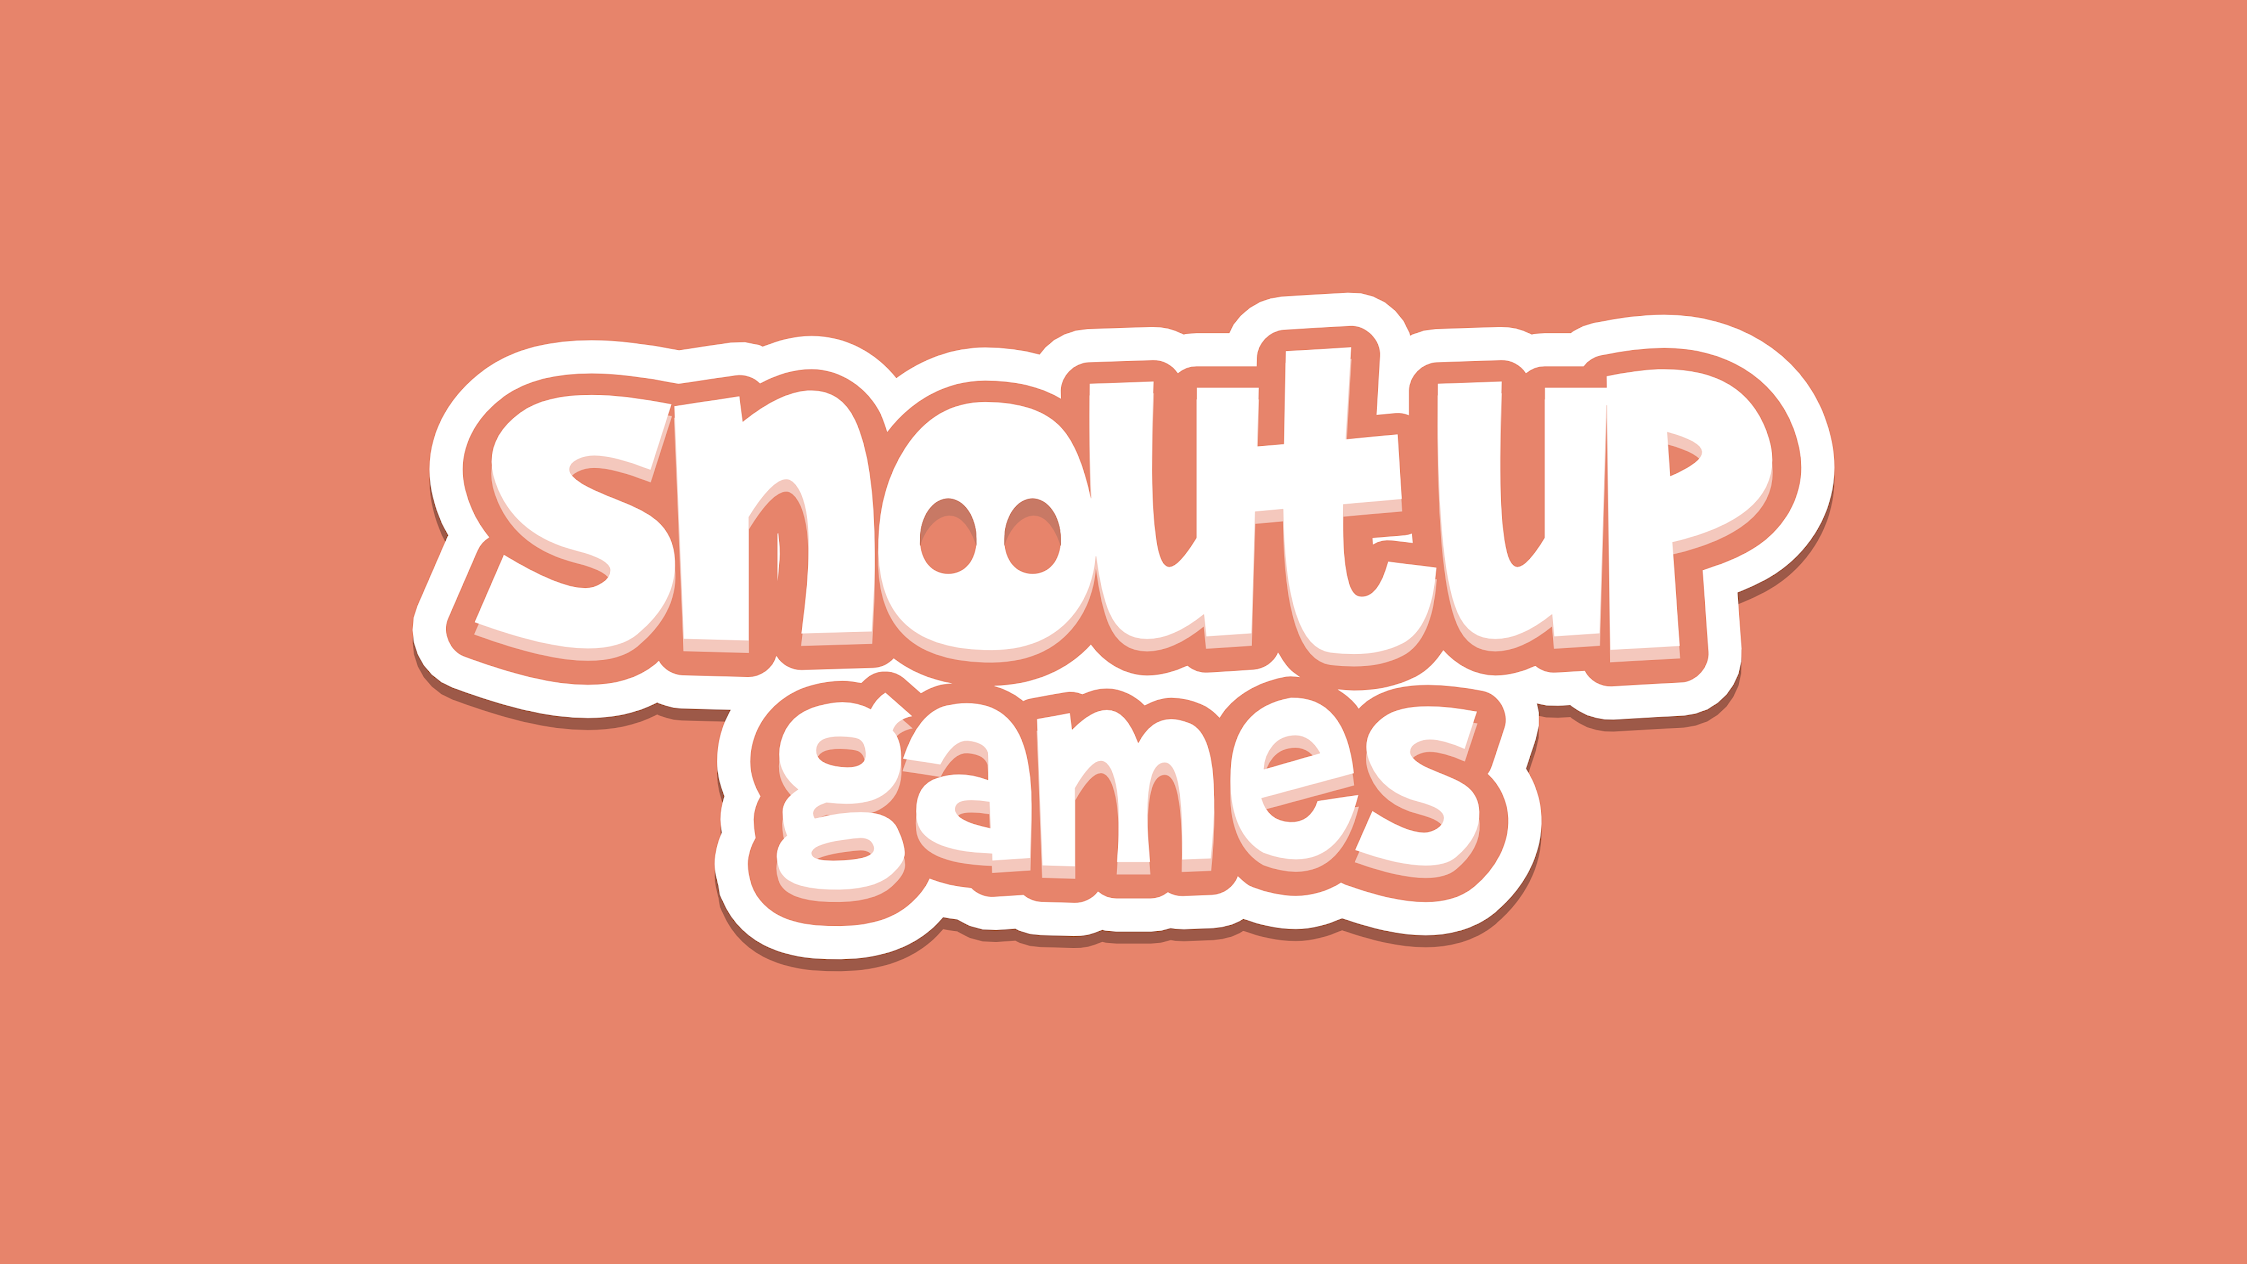 SnoutUp Games